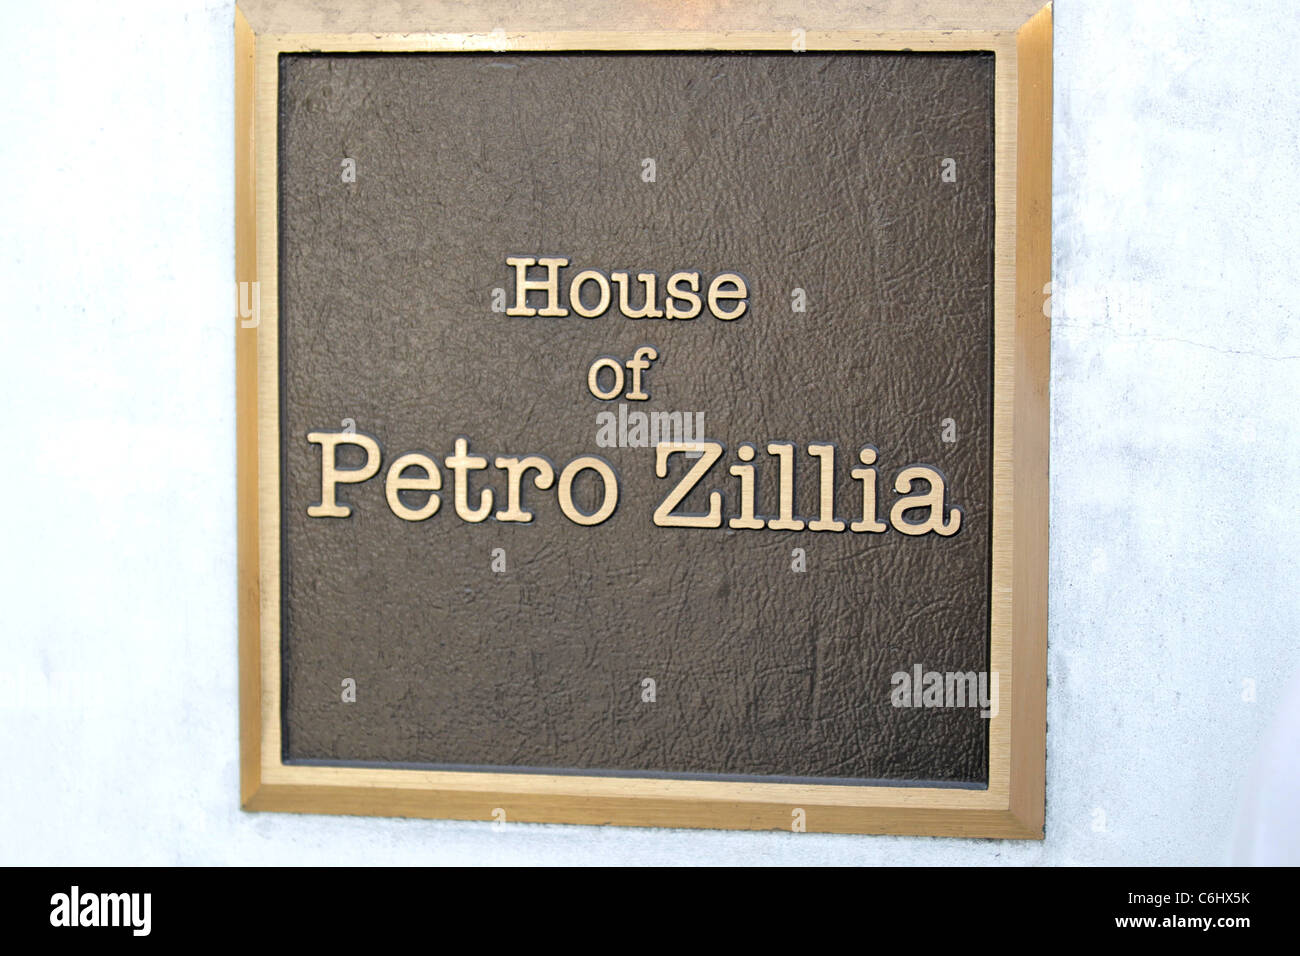 House of Petro Zillia where the Hilton sisters shopped with their mother Los Angeles, California - 26.03.10 - Stock Image